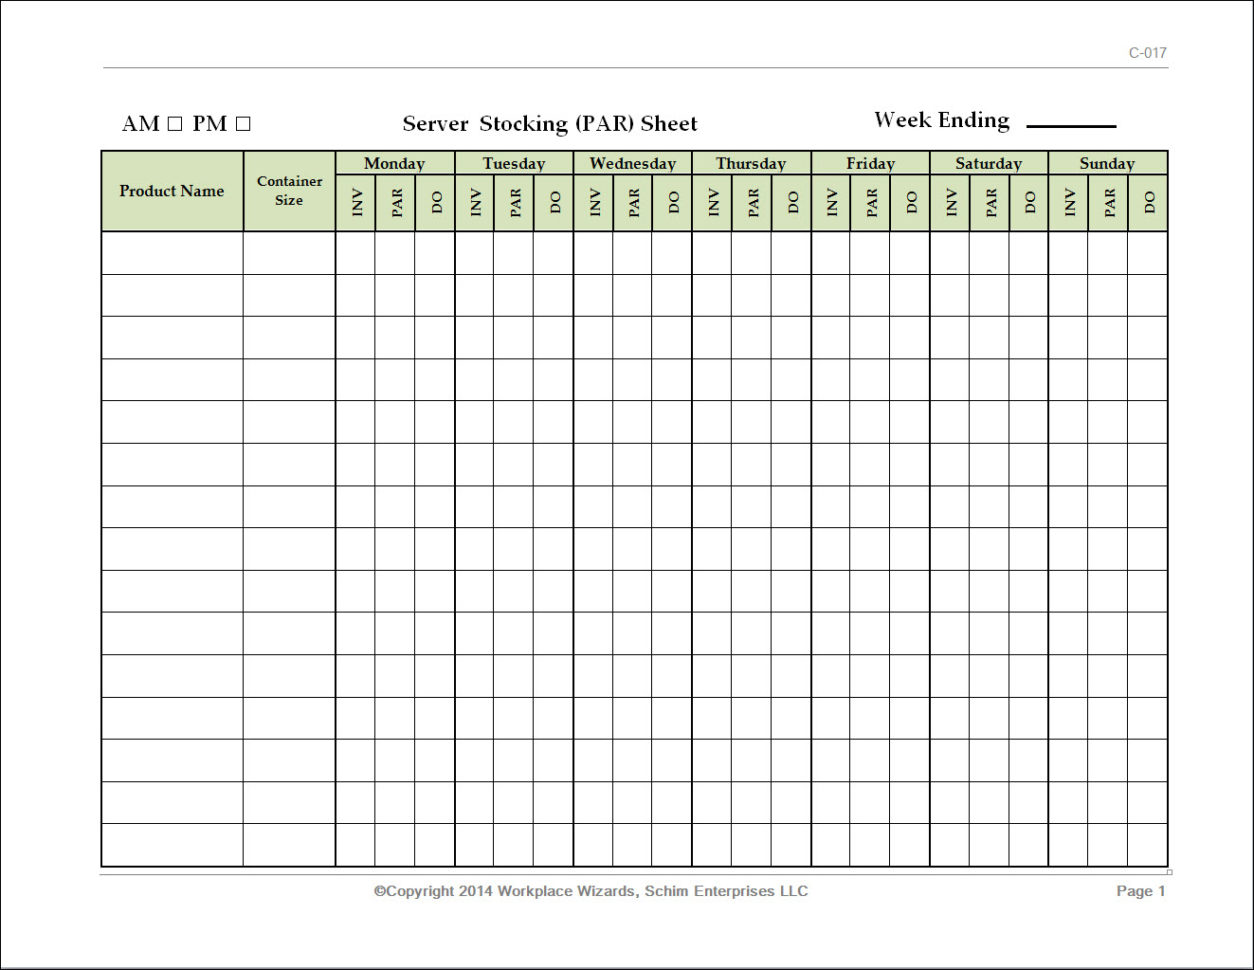 Startup Costs Spreadsheet Inside Free Restaurant Startup Costs Spreadsheet  Homebiz4U2Profit